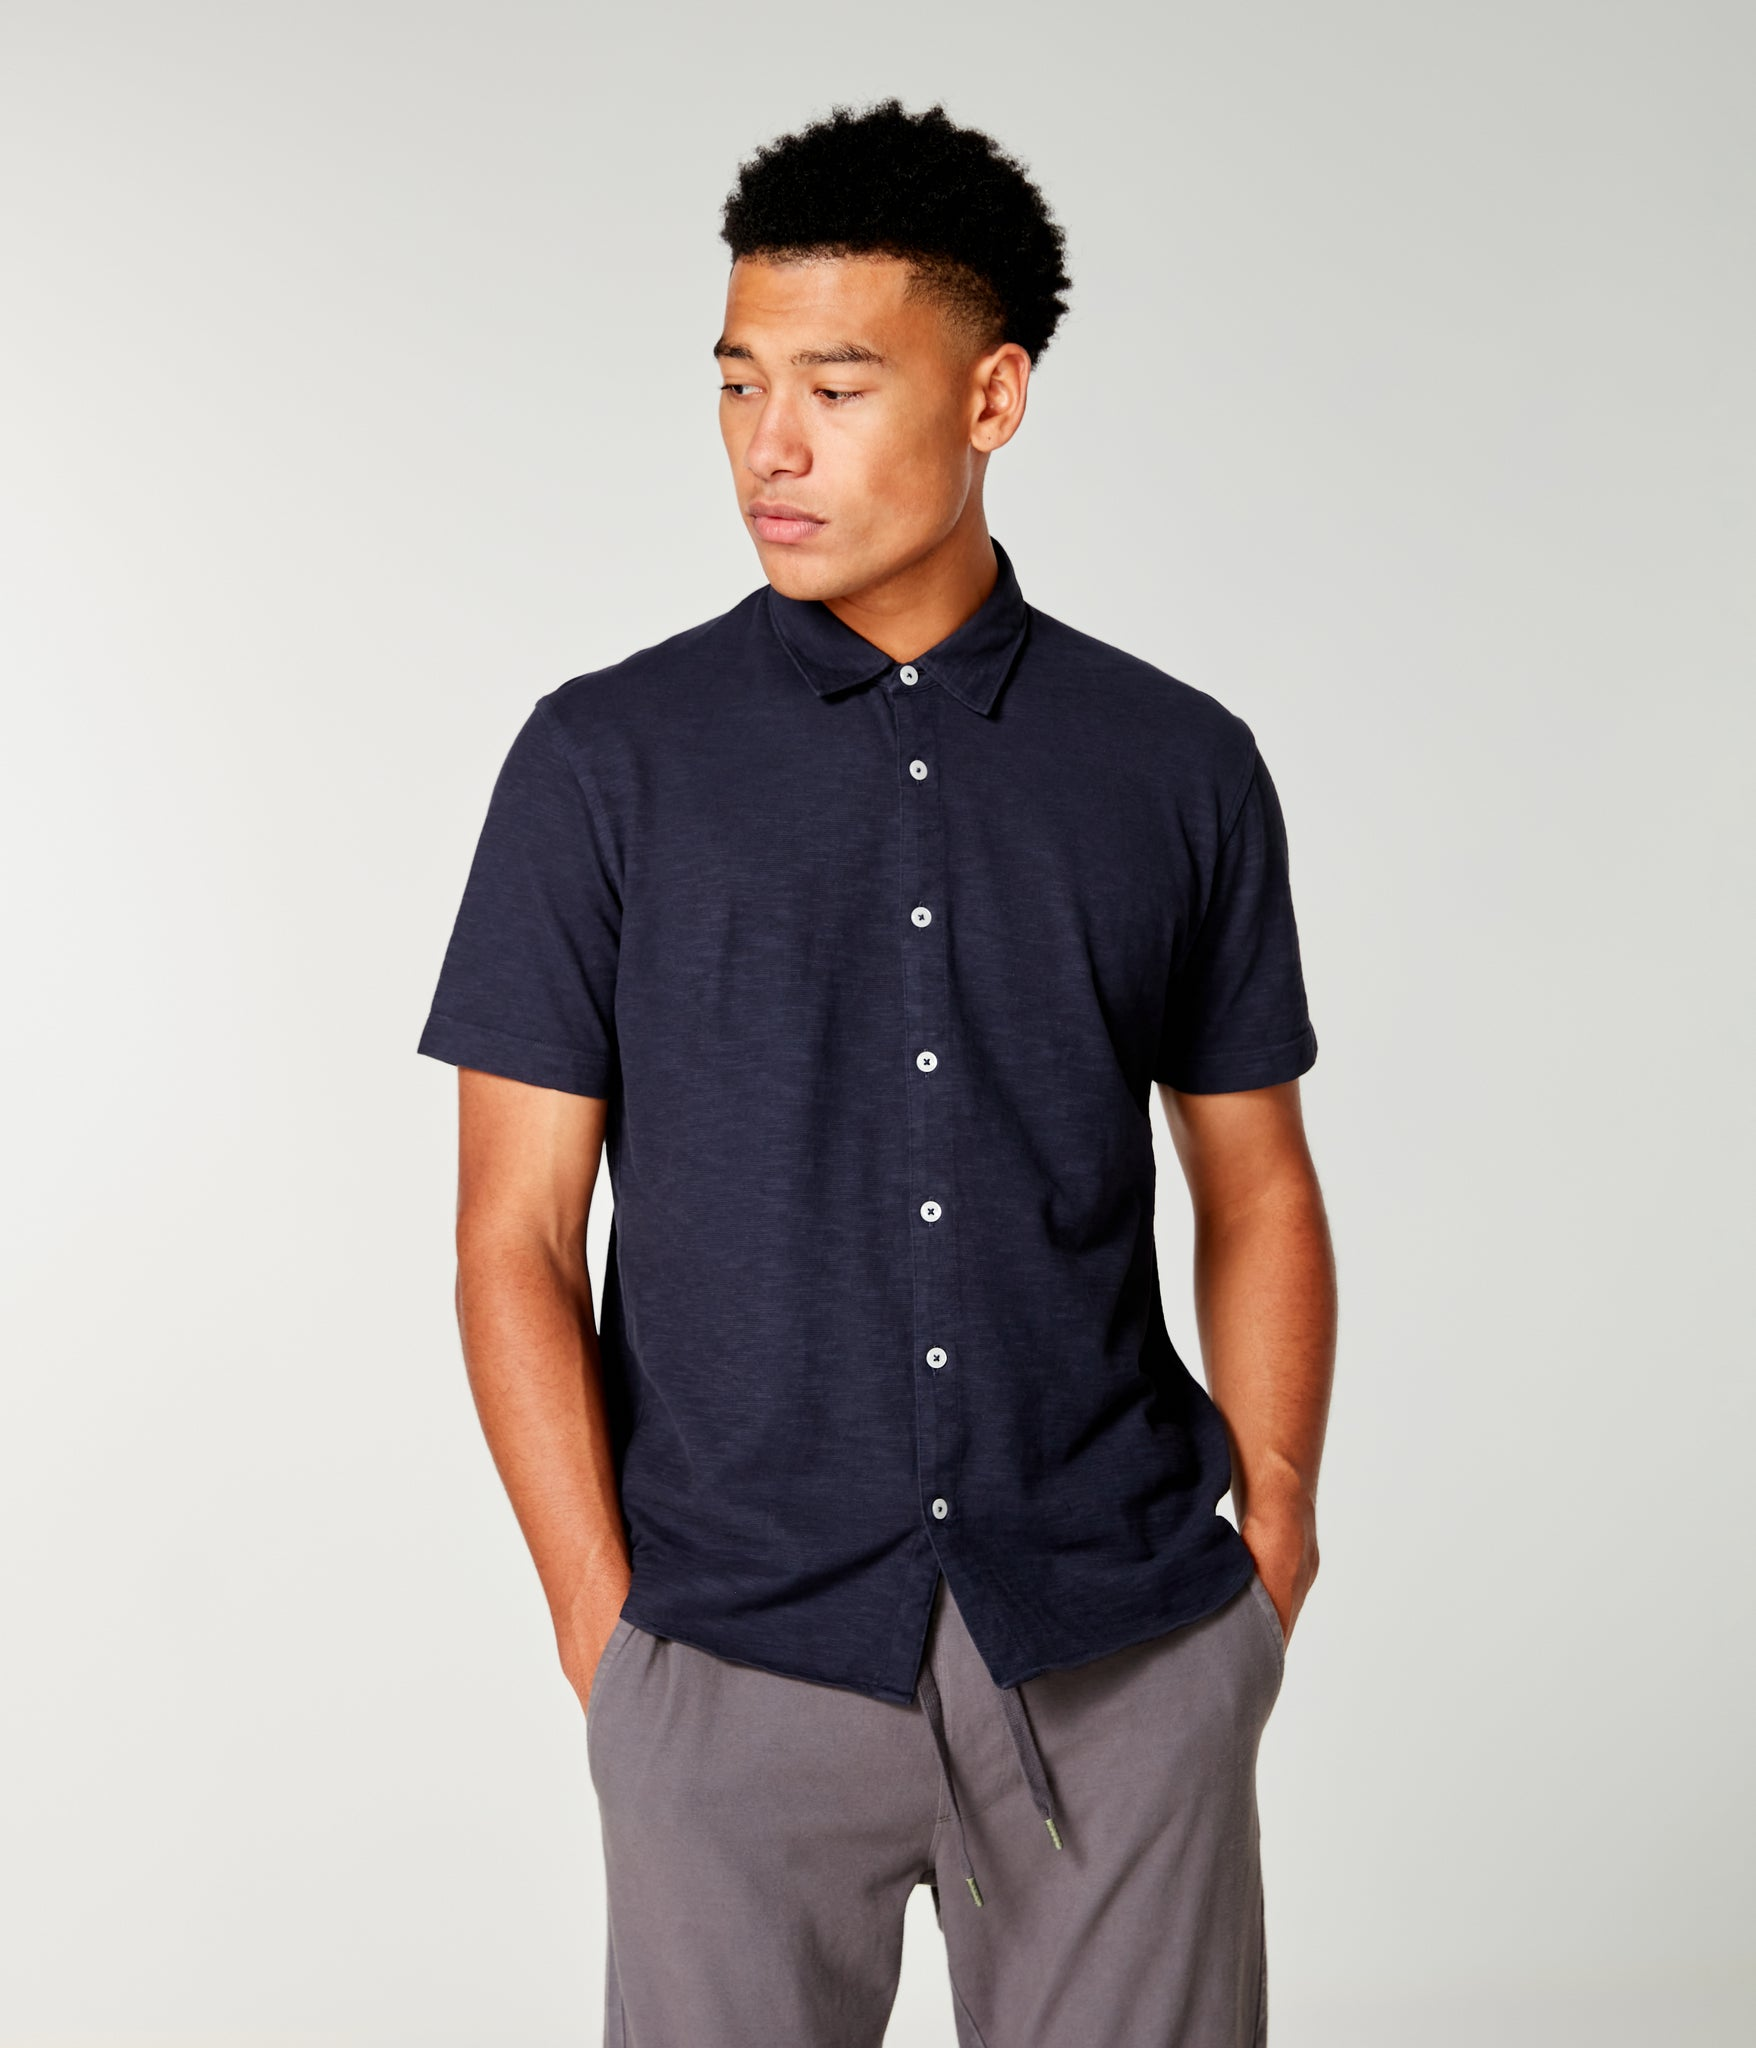 Soft Slub Jersey On-Point Shirt - Sky Captain